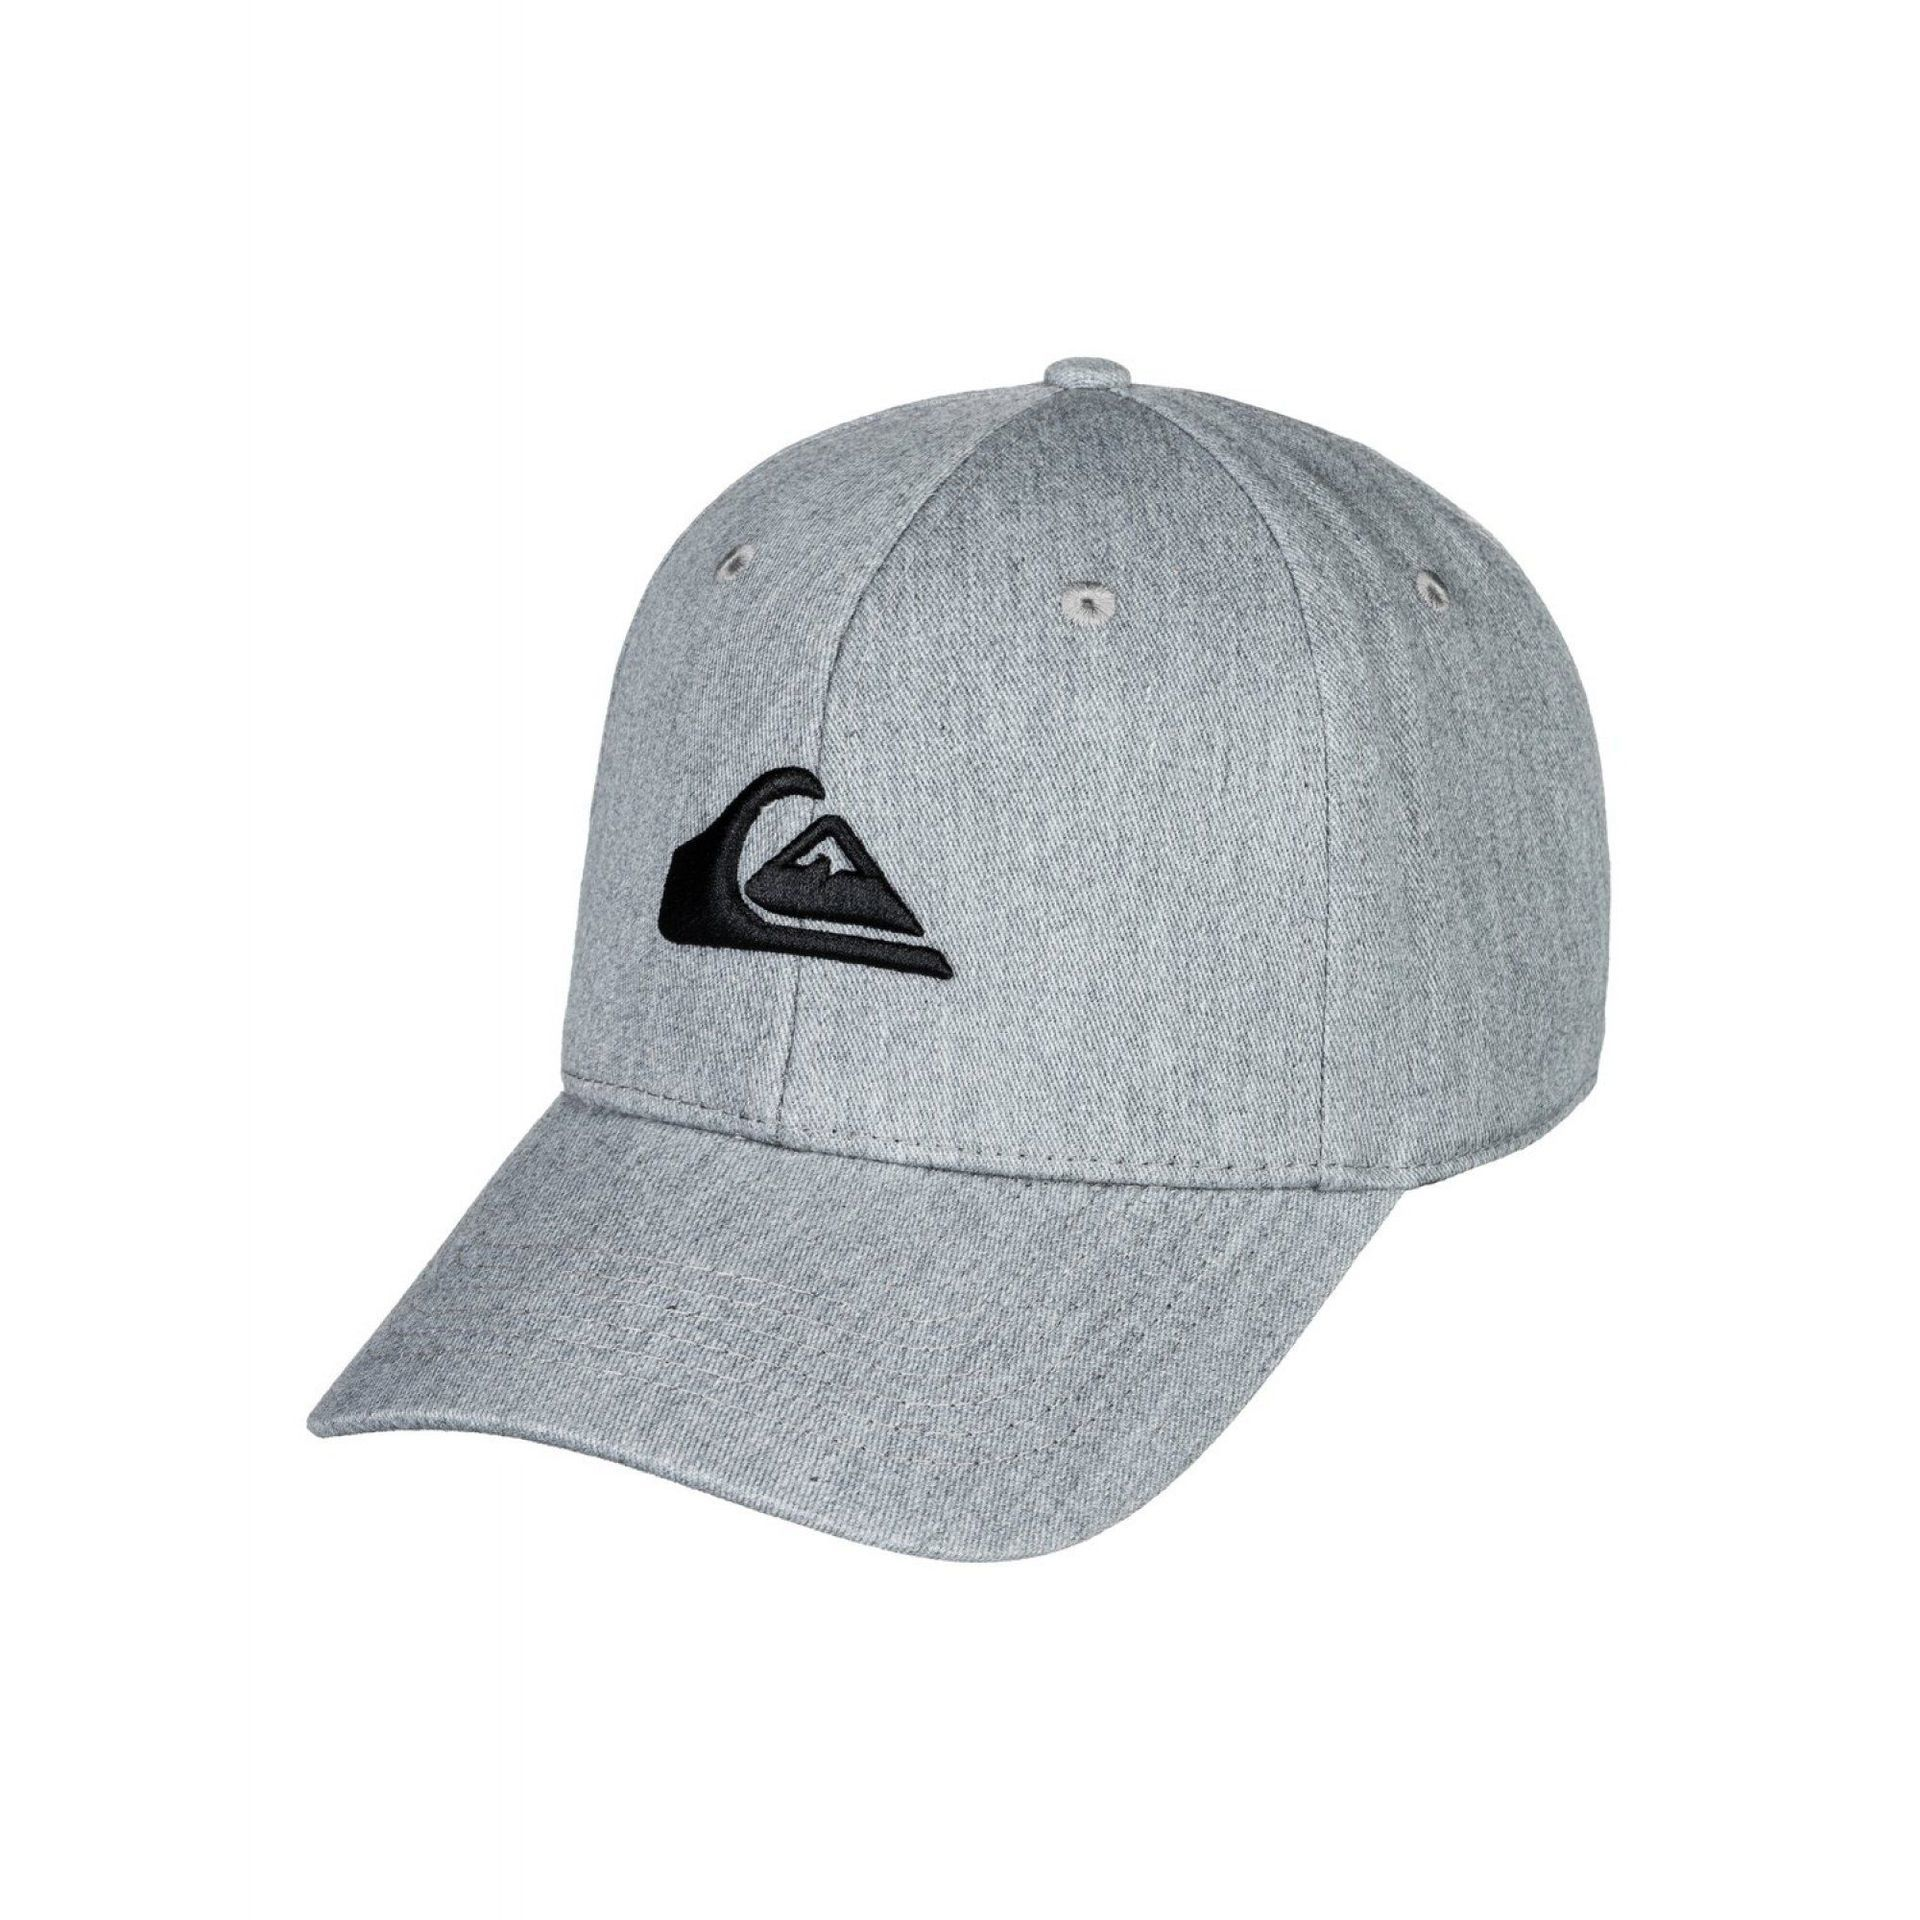 CZAPKA Z DASZKIEM QUIKSILVER DECADES MEDIUM GREY HEATHER